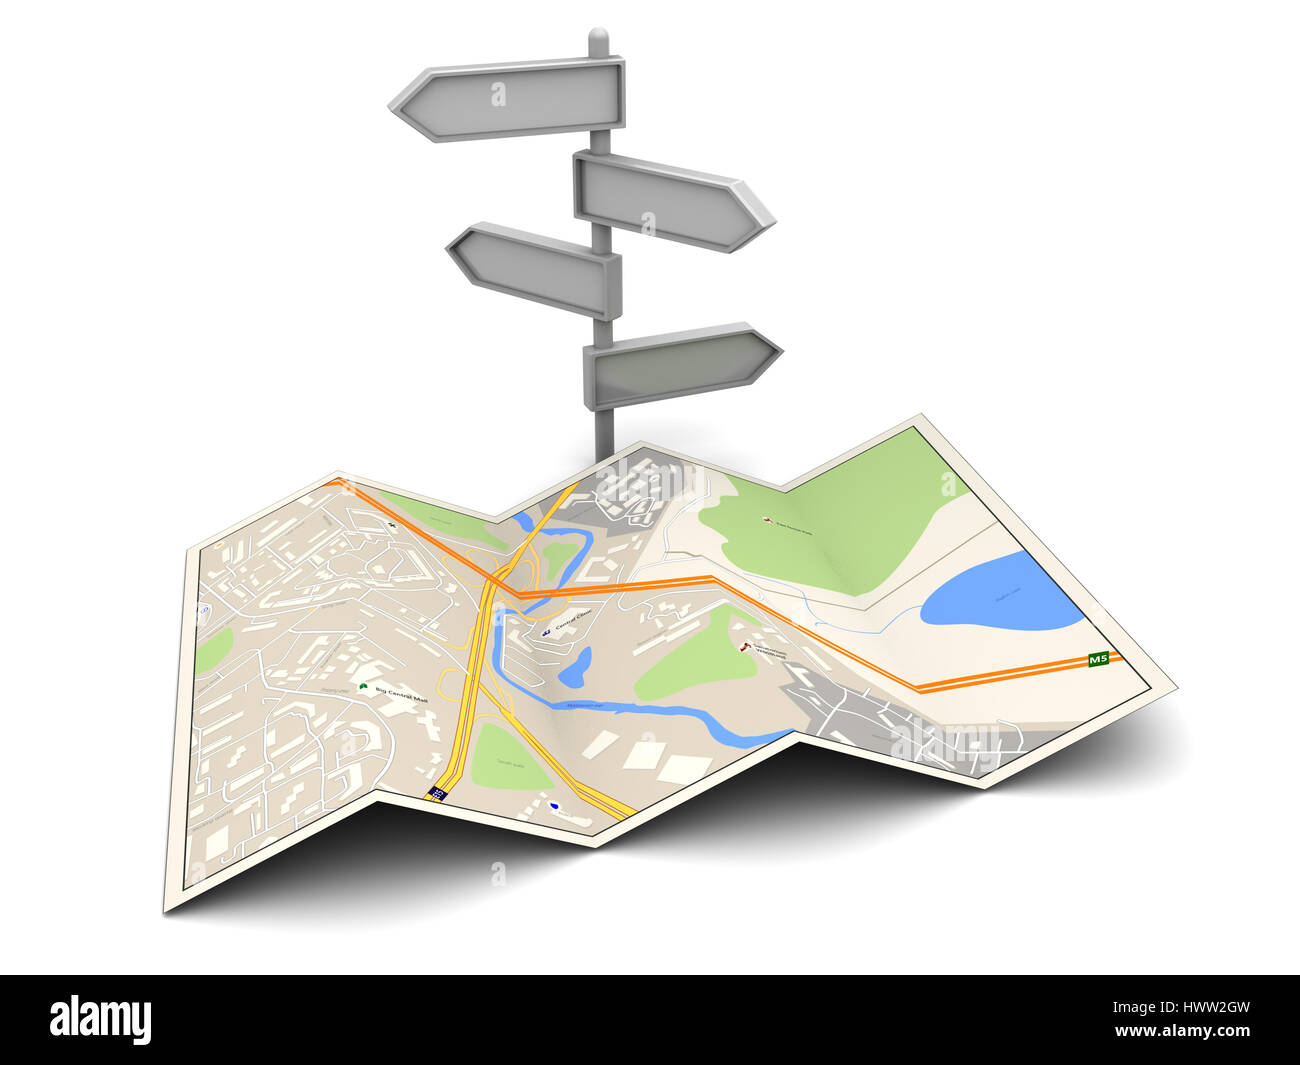 3d illustration of city map and index, over white background - Stock Image